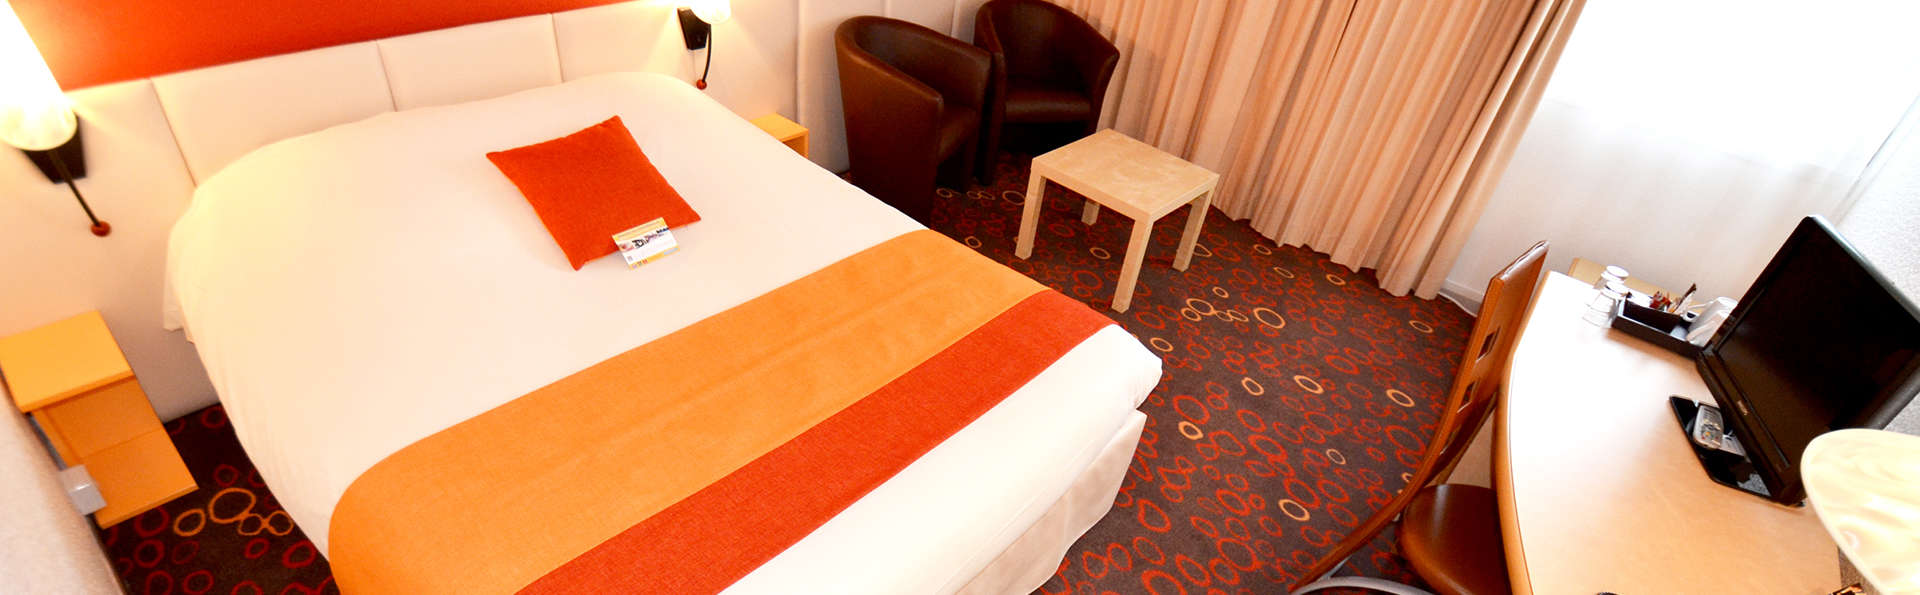 Quality Hotel Alisée Poitiers Nord - EDIT_room5.jpg